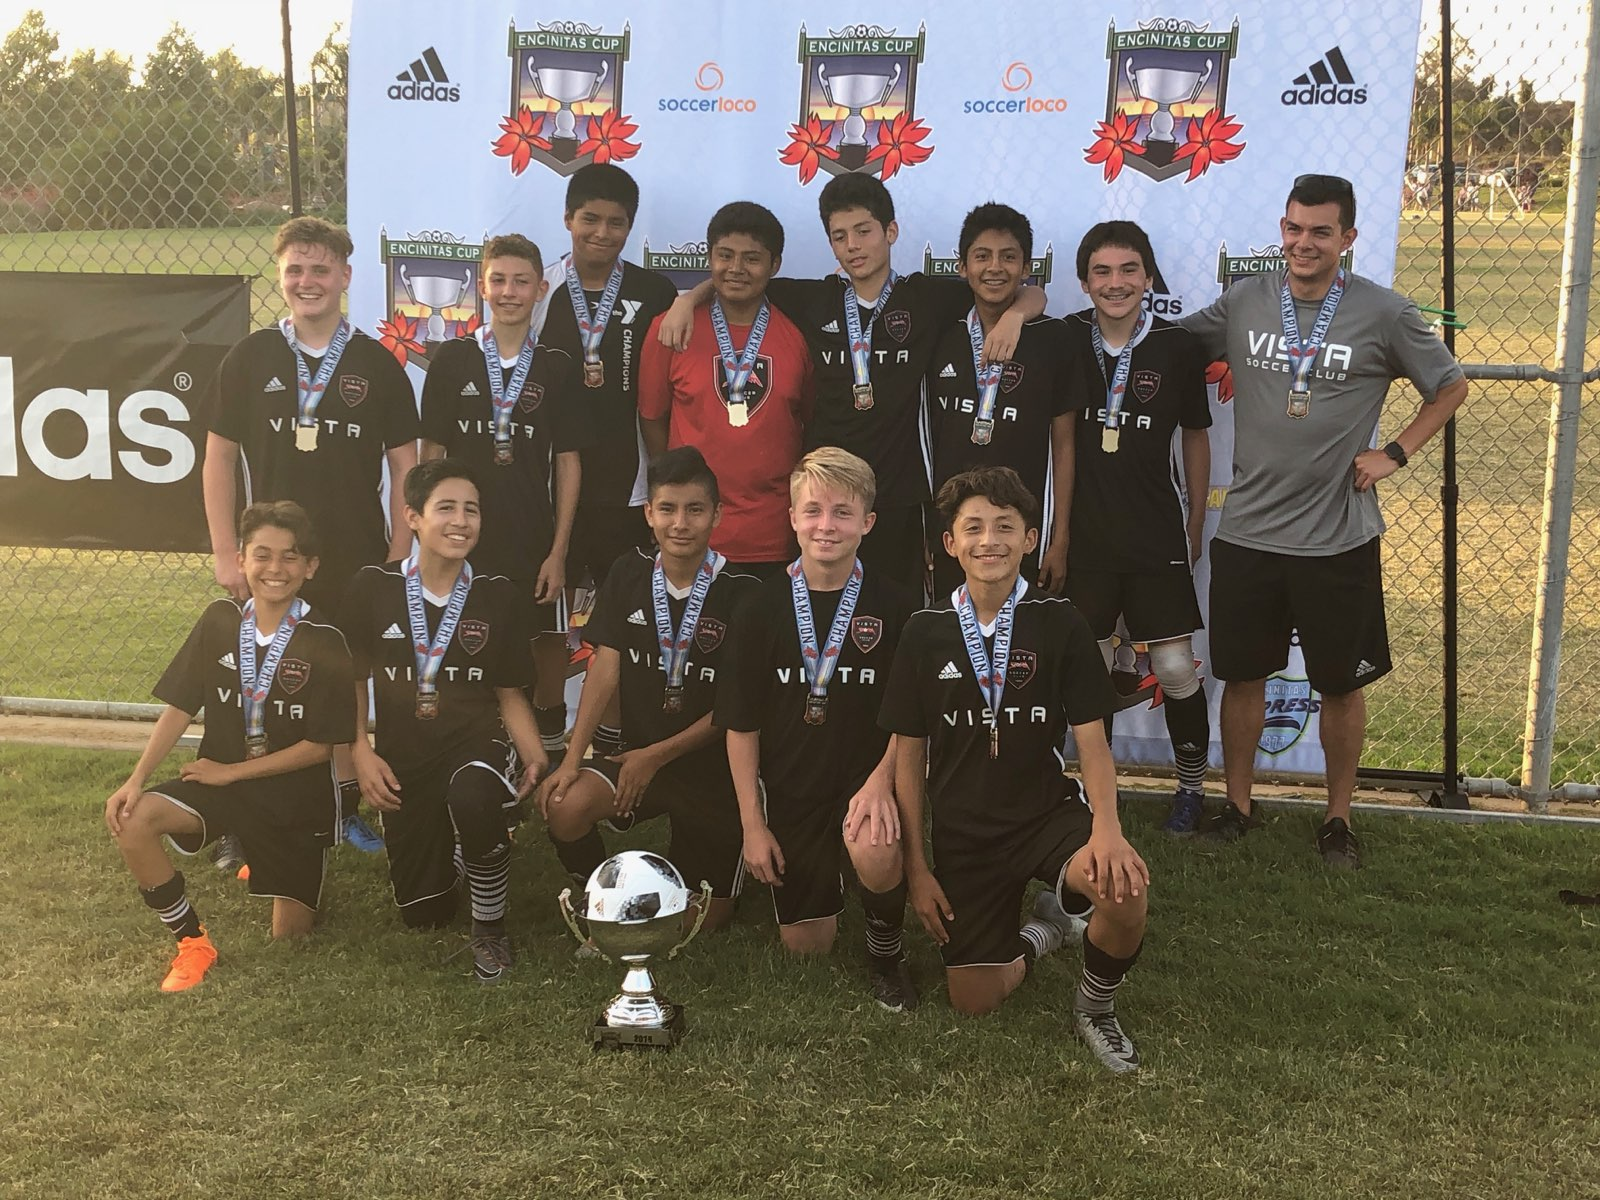 B2004 Black are Encinitas Cup Champions